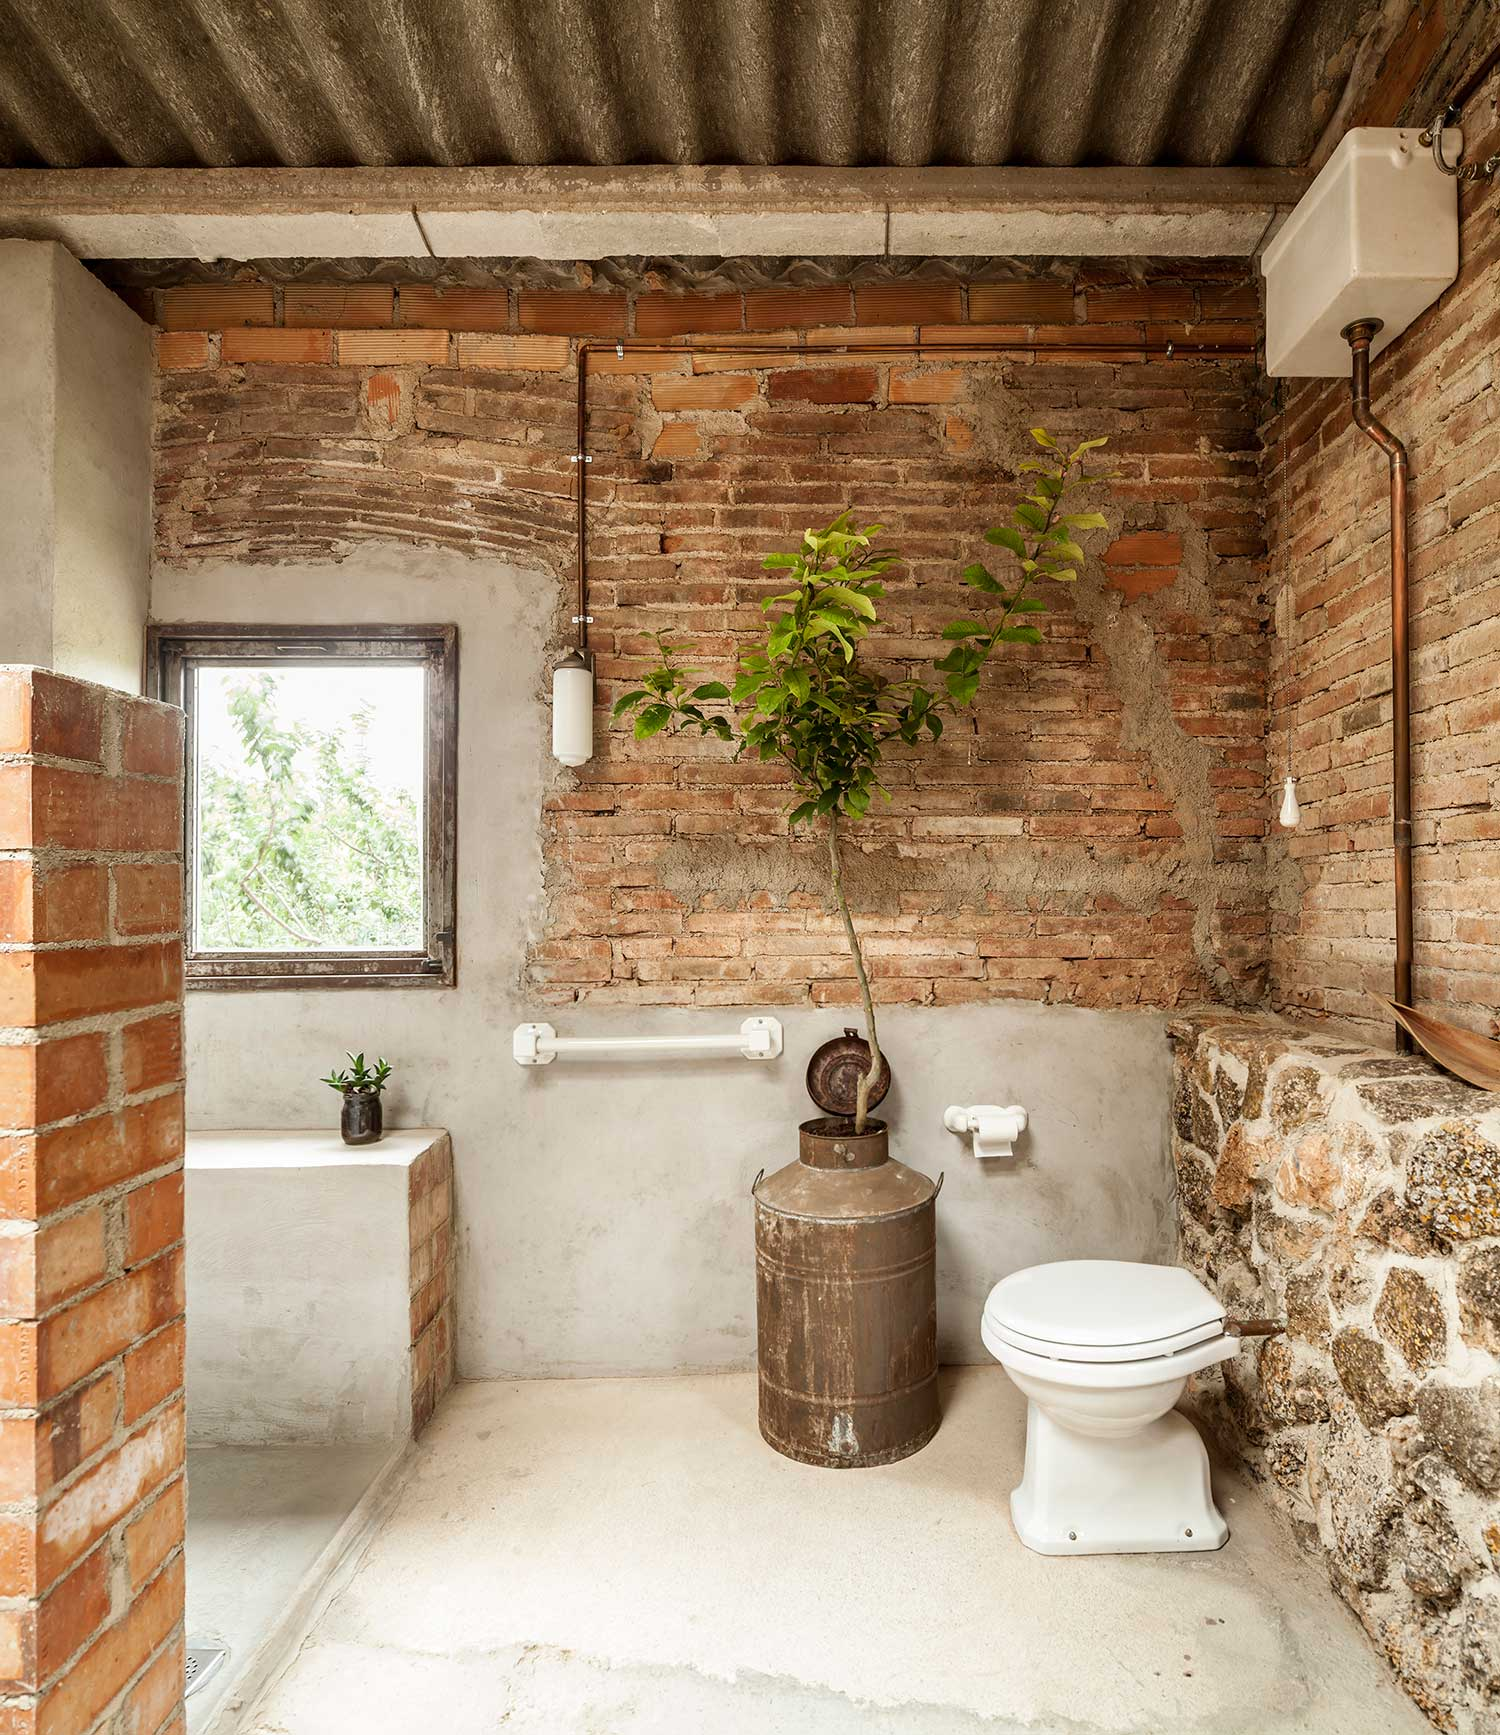 10CHANGING-ROOM-CUBE-FOR-A-GARDEN-WITH-A-POND_Clara-Nubiola_-Photo_Adria-Goula